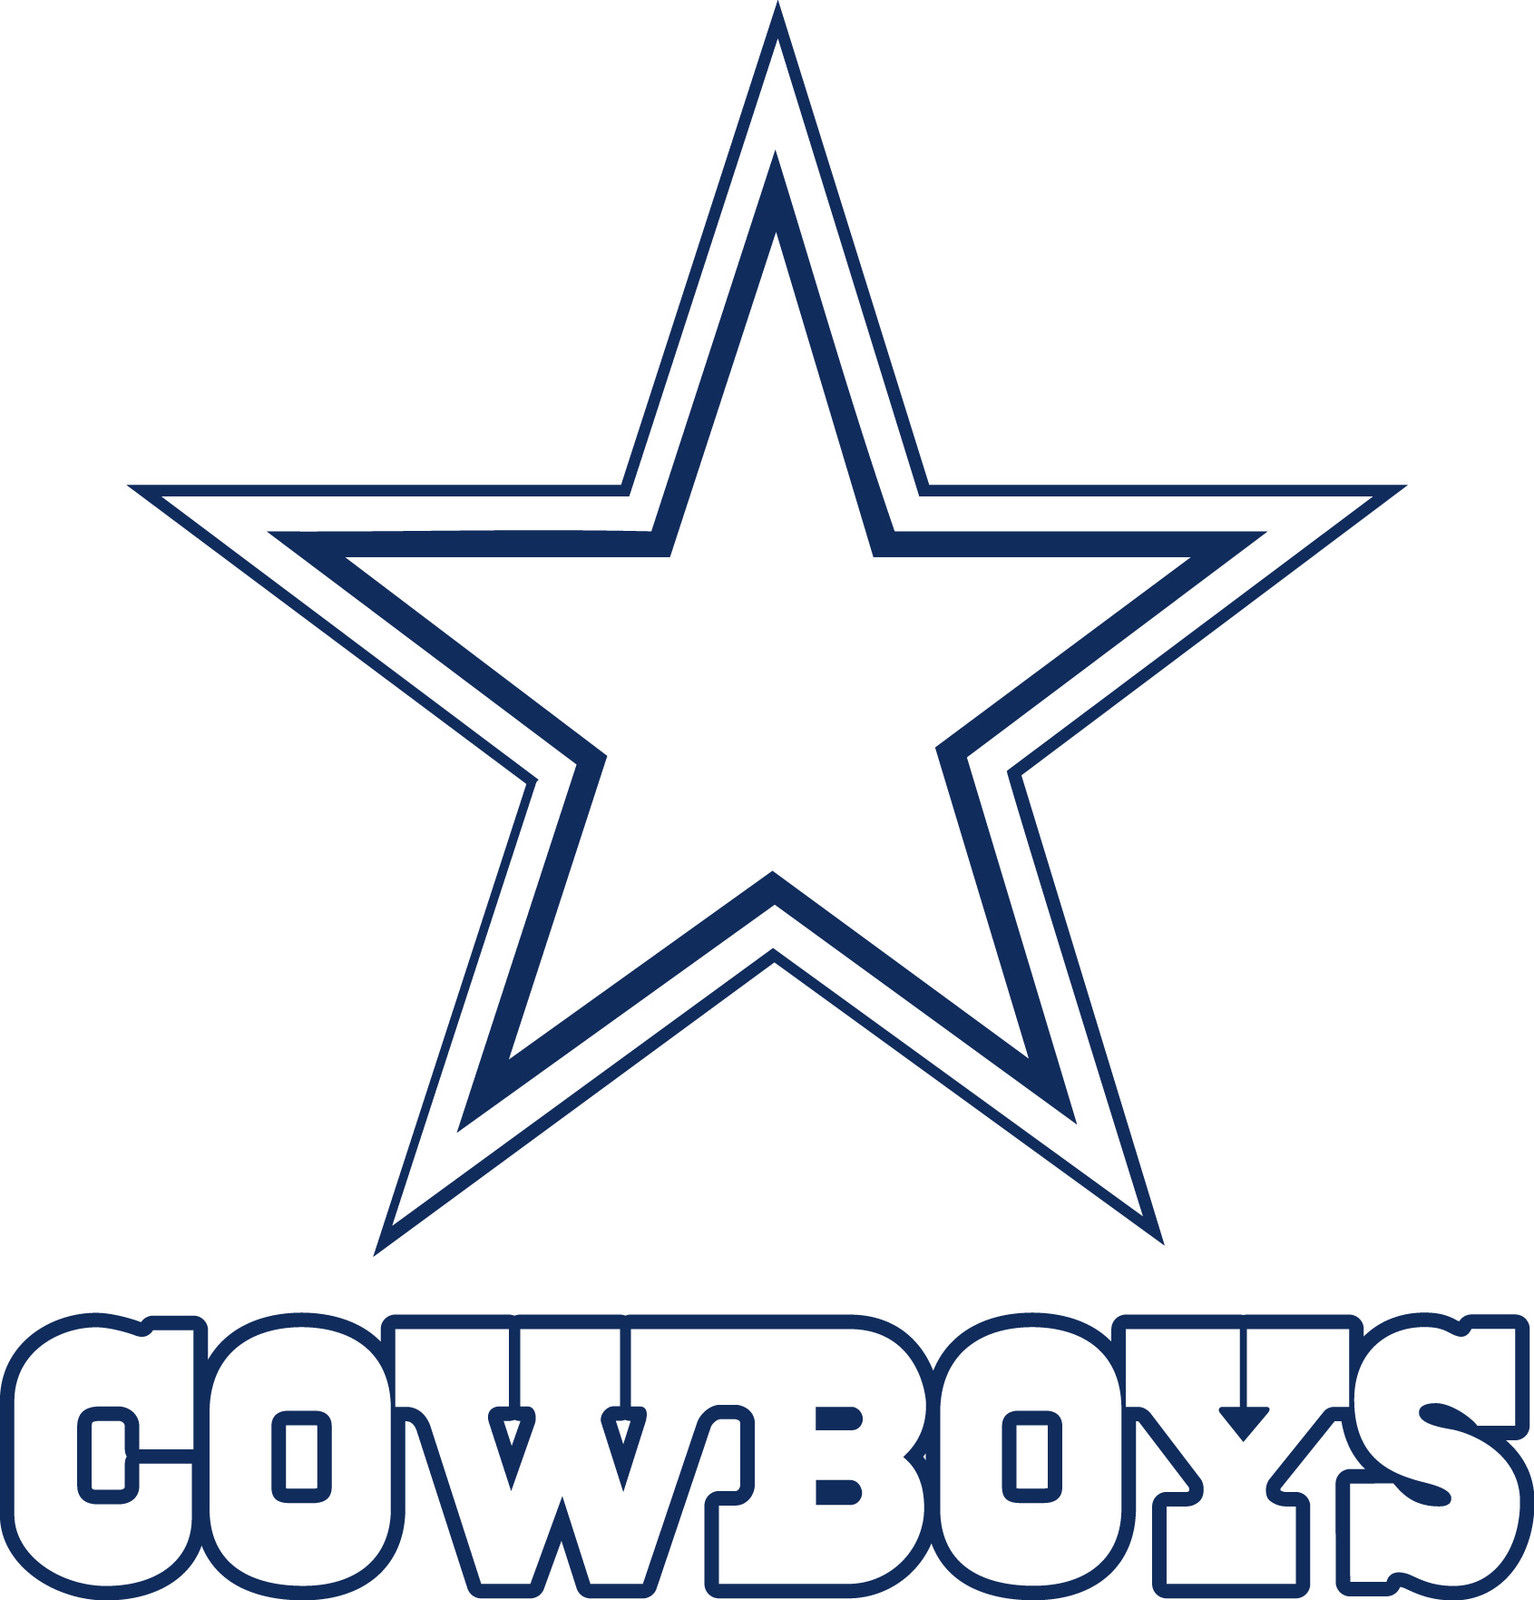 1534x1600 Dallas Cowboys Logo Drawings Dallas Cowboys Star Lo Drawing